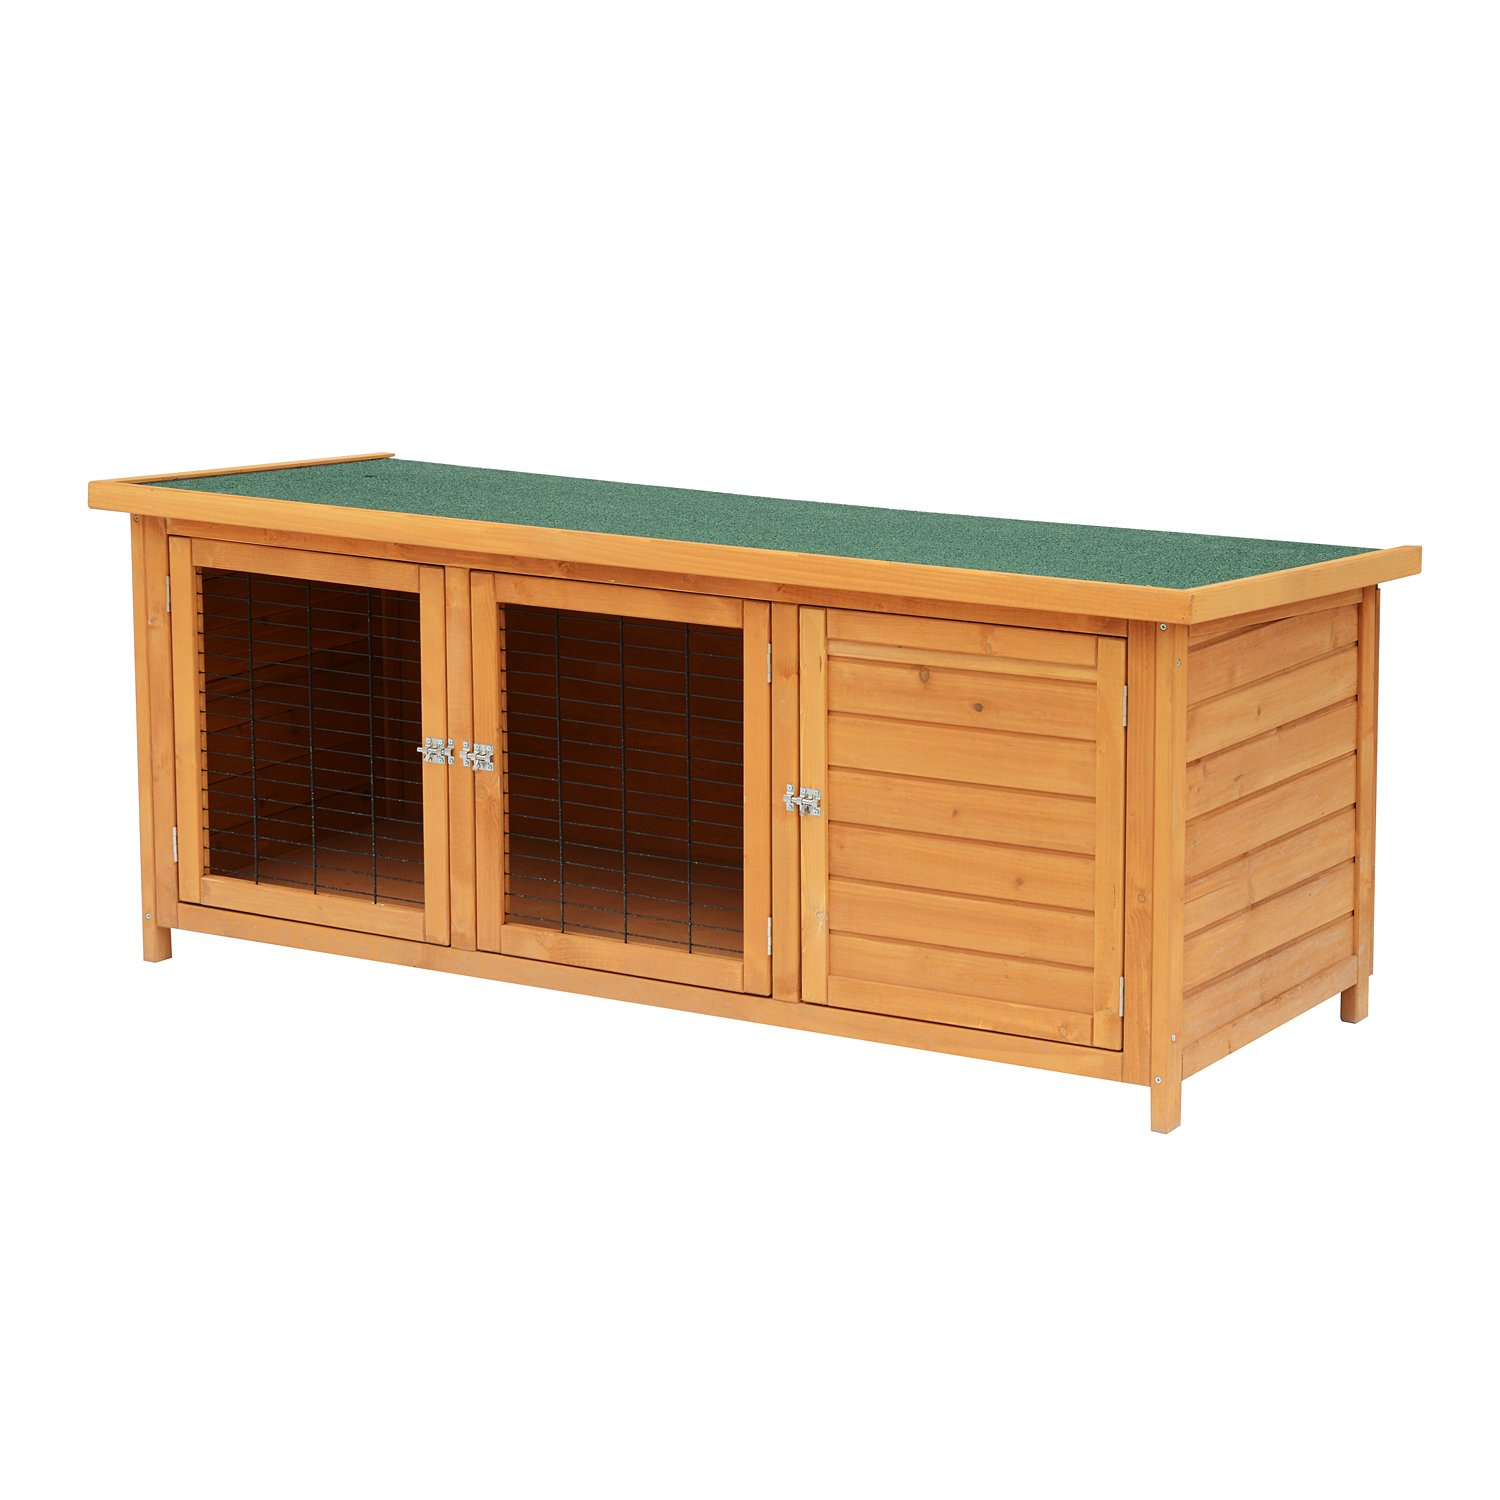 PawHut 60'' Wooden Outdoor Small Animal Rabbit Hutch Outdoor